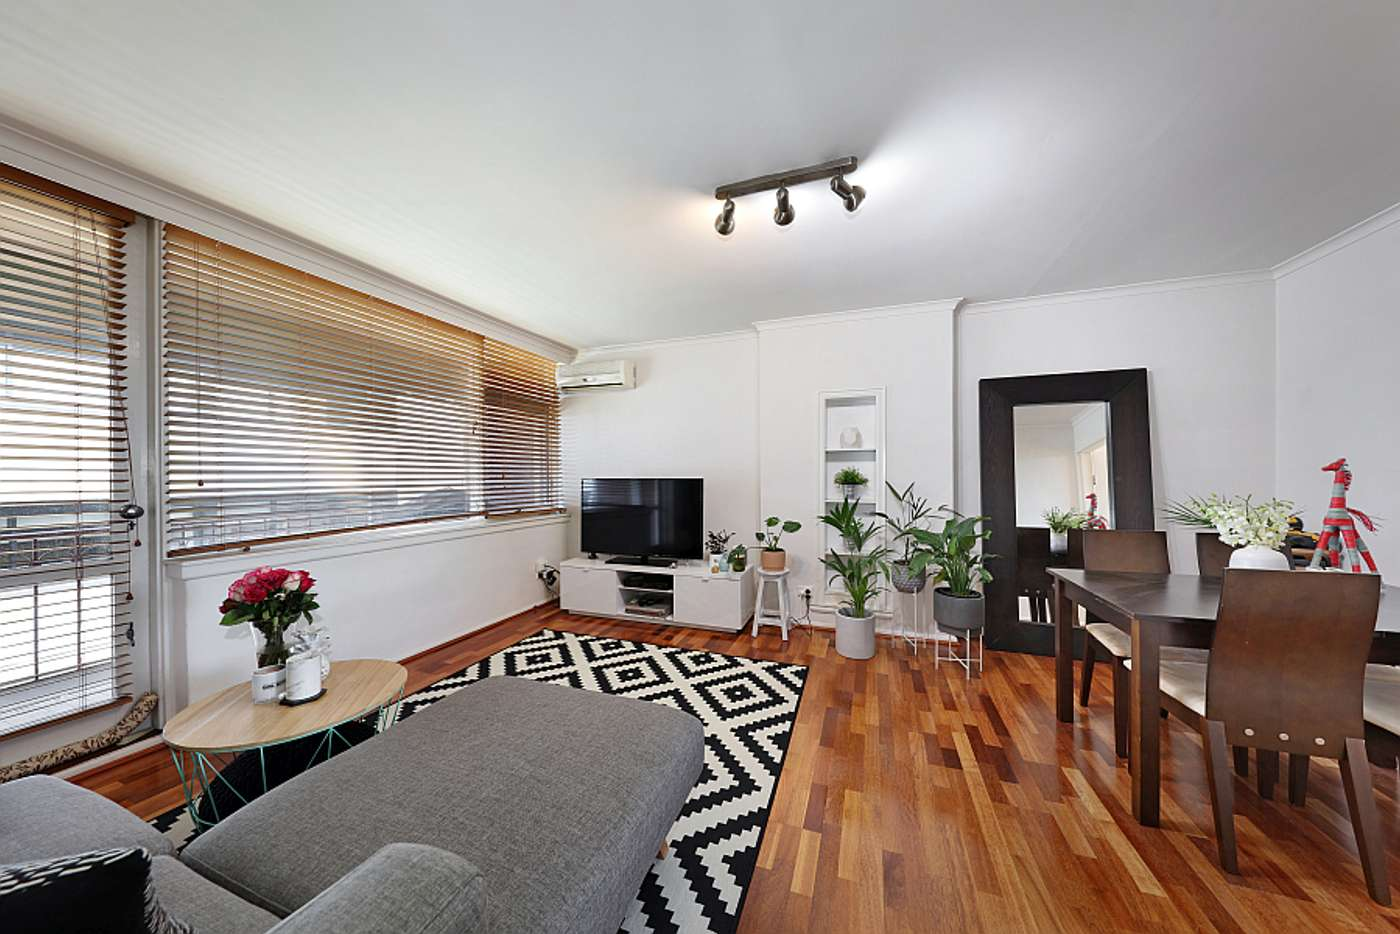 Main view of Homely apartment listing, 10/527 Dandenong Road, Armadale VIC 3143